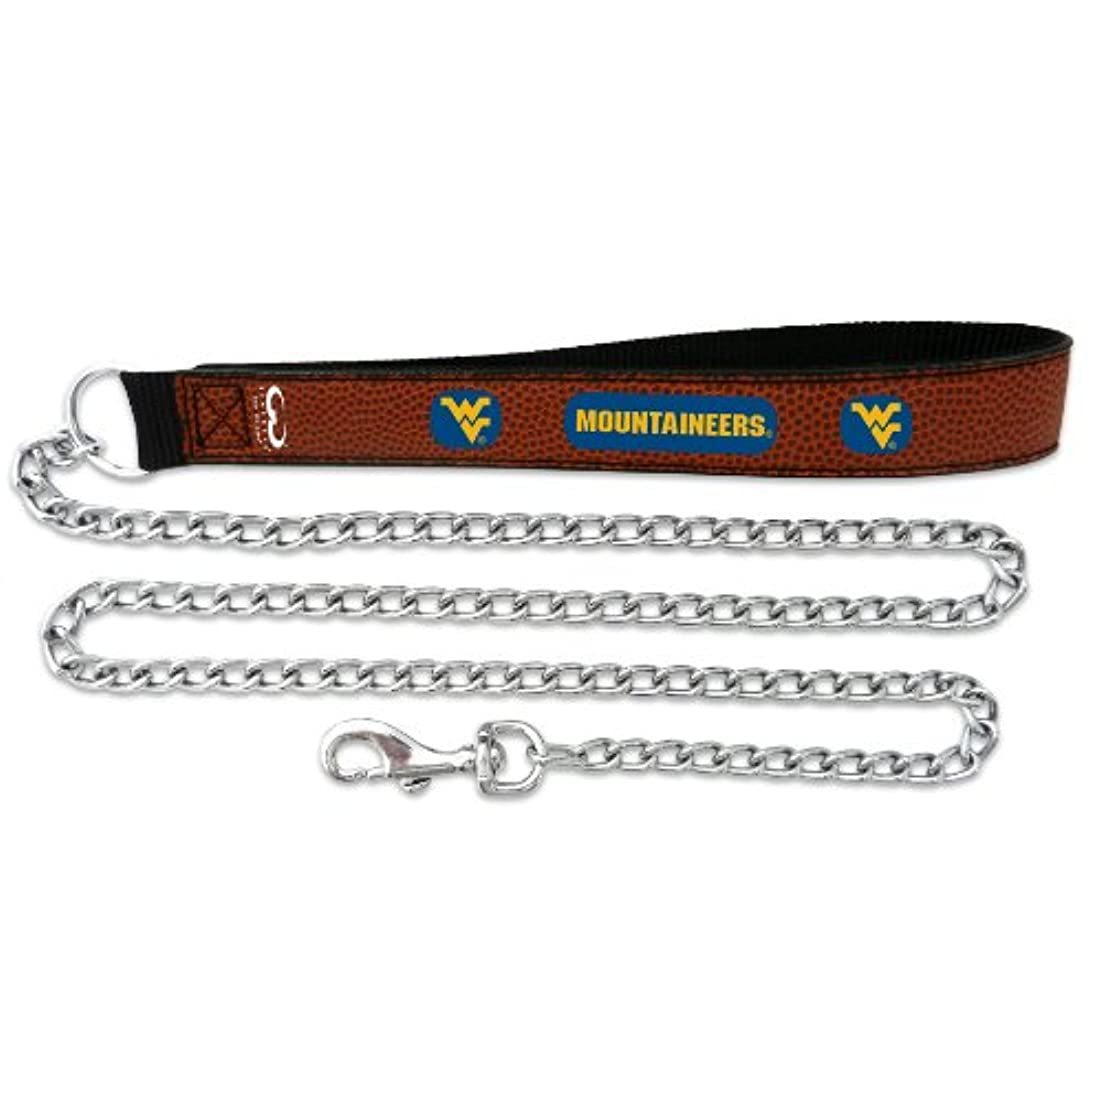 切り刻む機械的地元West Virginia Mountaineers Football Leather 3.5mm Chain Leash - L